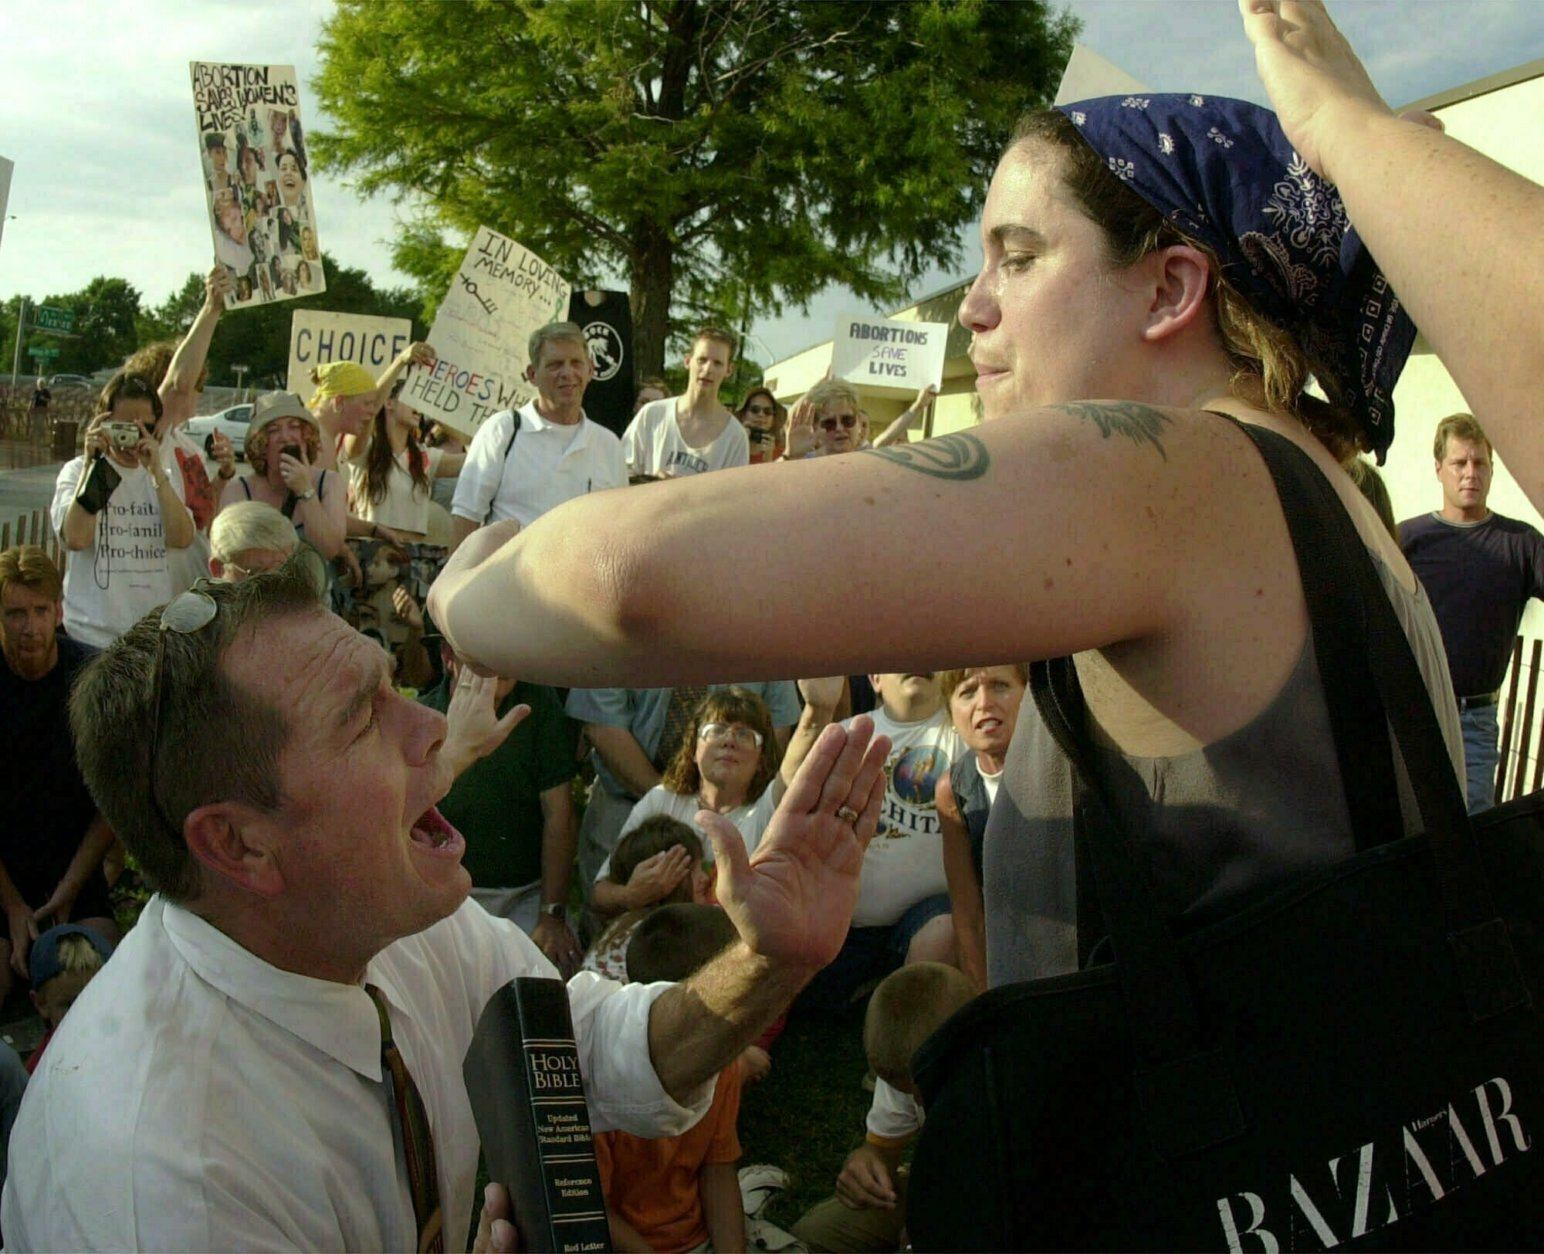 FILE - In this Saturday, July 14, 2001 file photo, abortion-rights activist Karen Nicholls of Chicago, right, shields herself from anti-abortion leader Rev. Flip Benham, left, as Benham attempts to pray for Nicholls during a protest by the two groups , at a Wichita, Kan., abortion clinic. (AP Photo/Charlie Riedel, file)